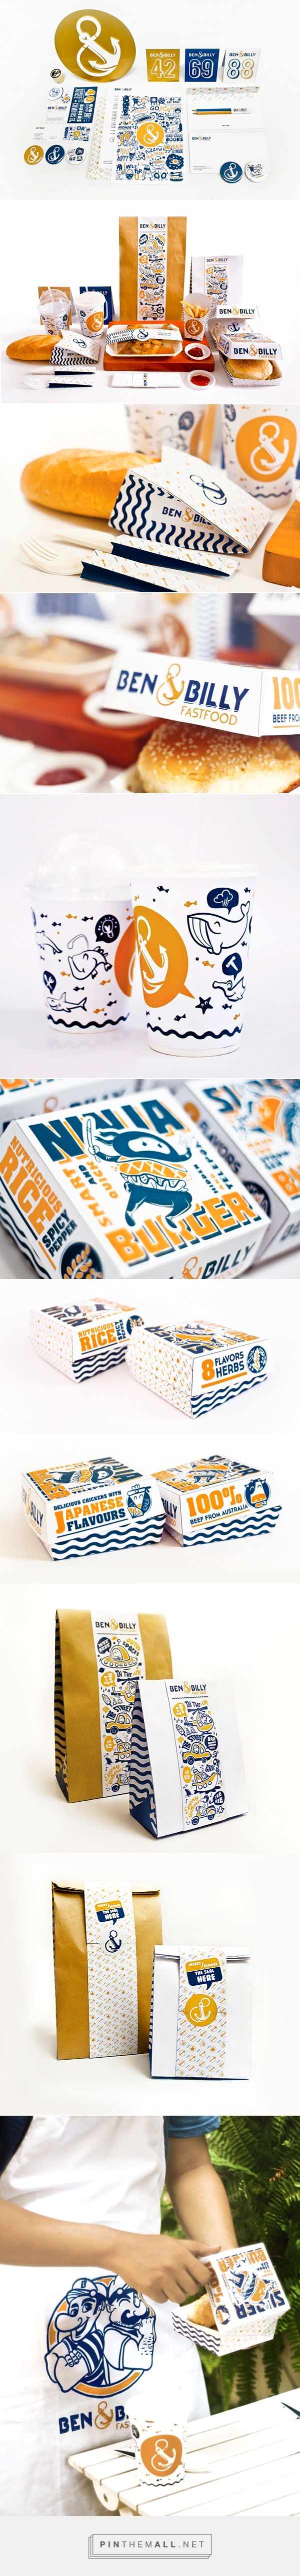 identity / food / restaurant / Ben & Billy on Behance curated by Packaging Diva PD. Lunchtime identity packaging branding. Fast food packaging at it's finest : )